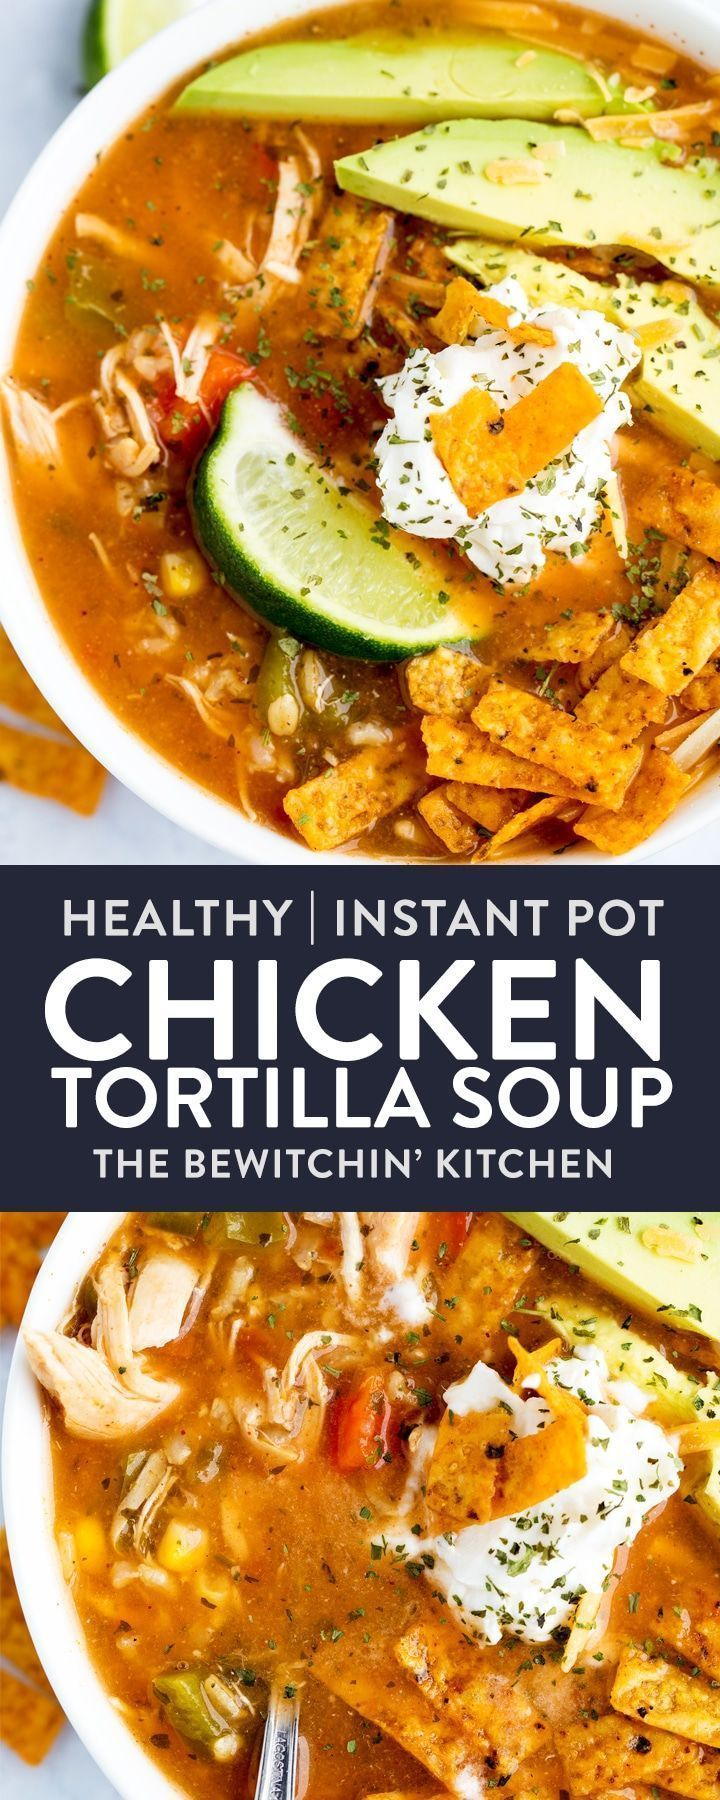 Instant Pot Chicken Tortilla Soup | The Bewitchin' Kitchen